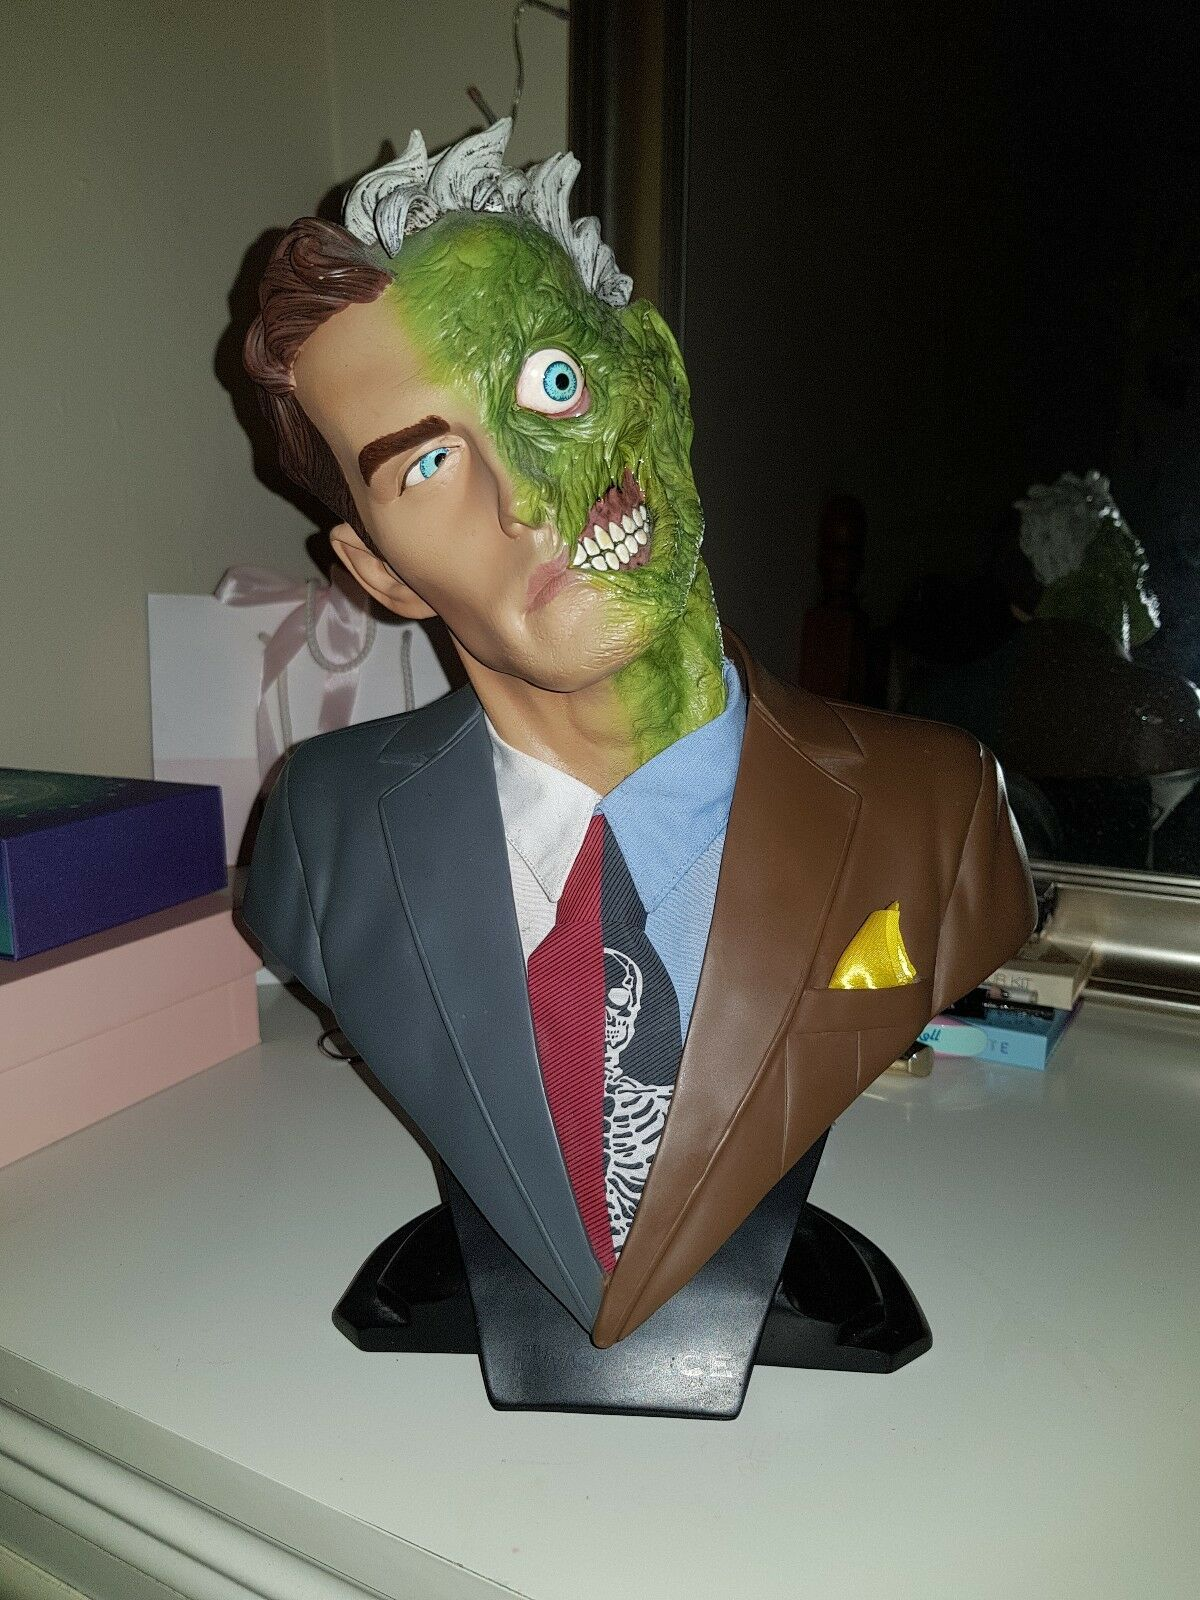 DC direct figure, Two face 1 2 scale bust. Limited edition